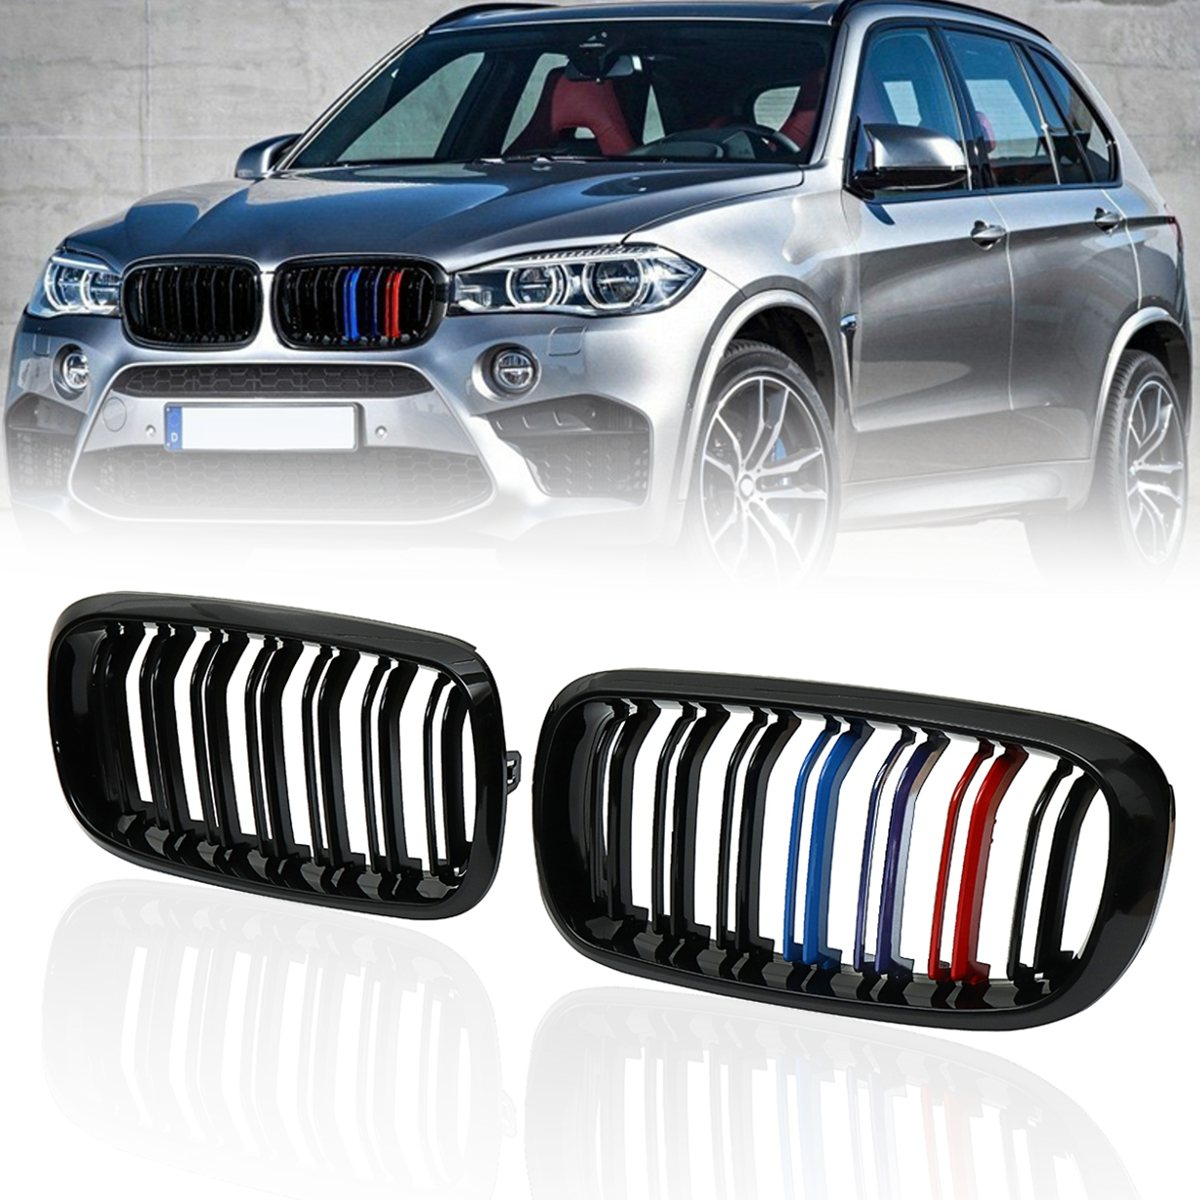 Pair Matte Gloss Black M Color Front Double Slat Kidney Grille For BMW F86 F15 F16 X5 X6 X5M F85 X6M F86 2014 2015 2016 2017 x5 f15 x6 f16 abs gloss black grill for bmw x5 x6 f15 f16 front bumper grille kidney mesh